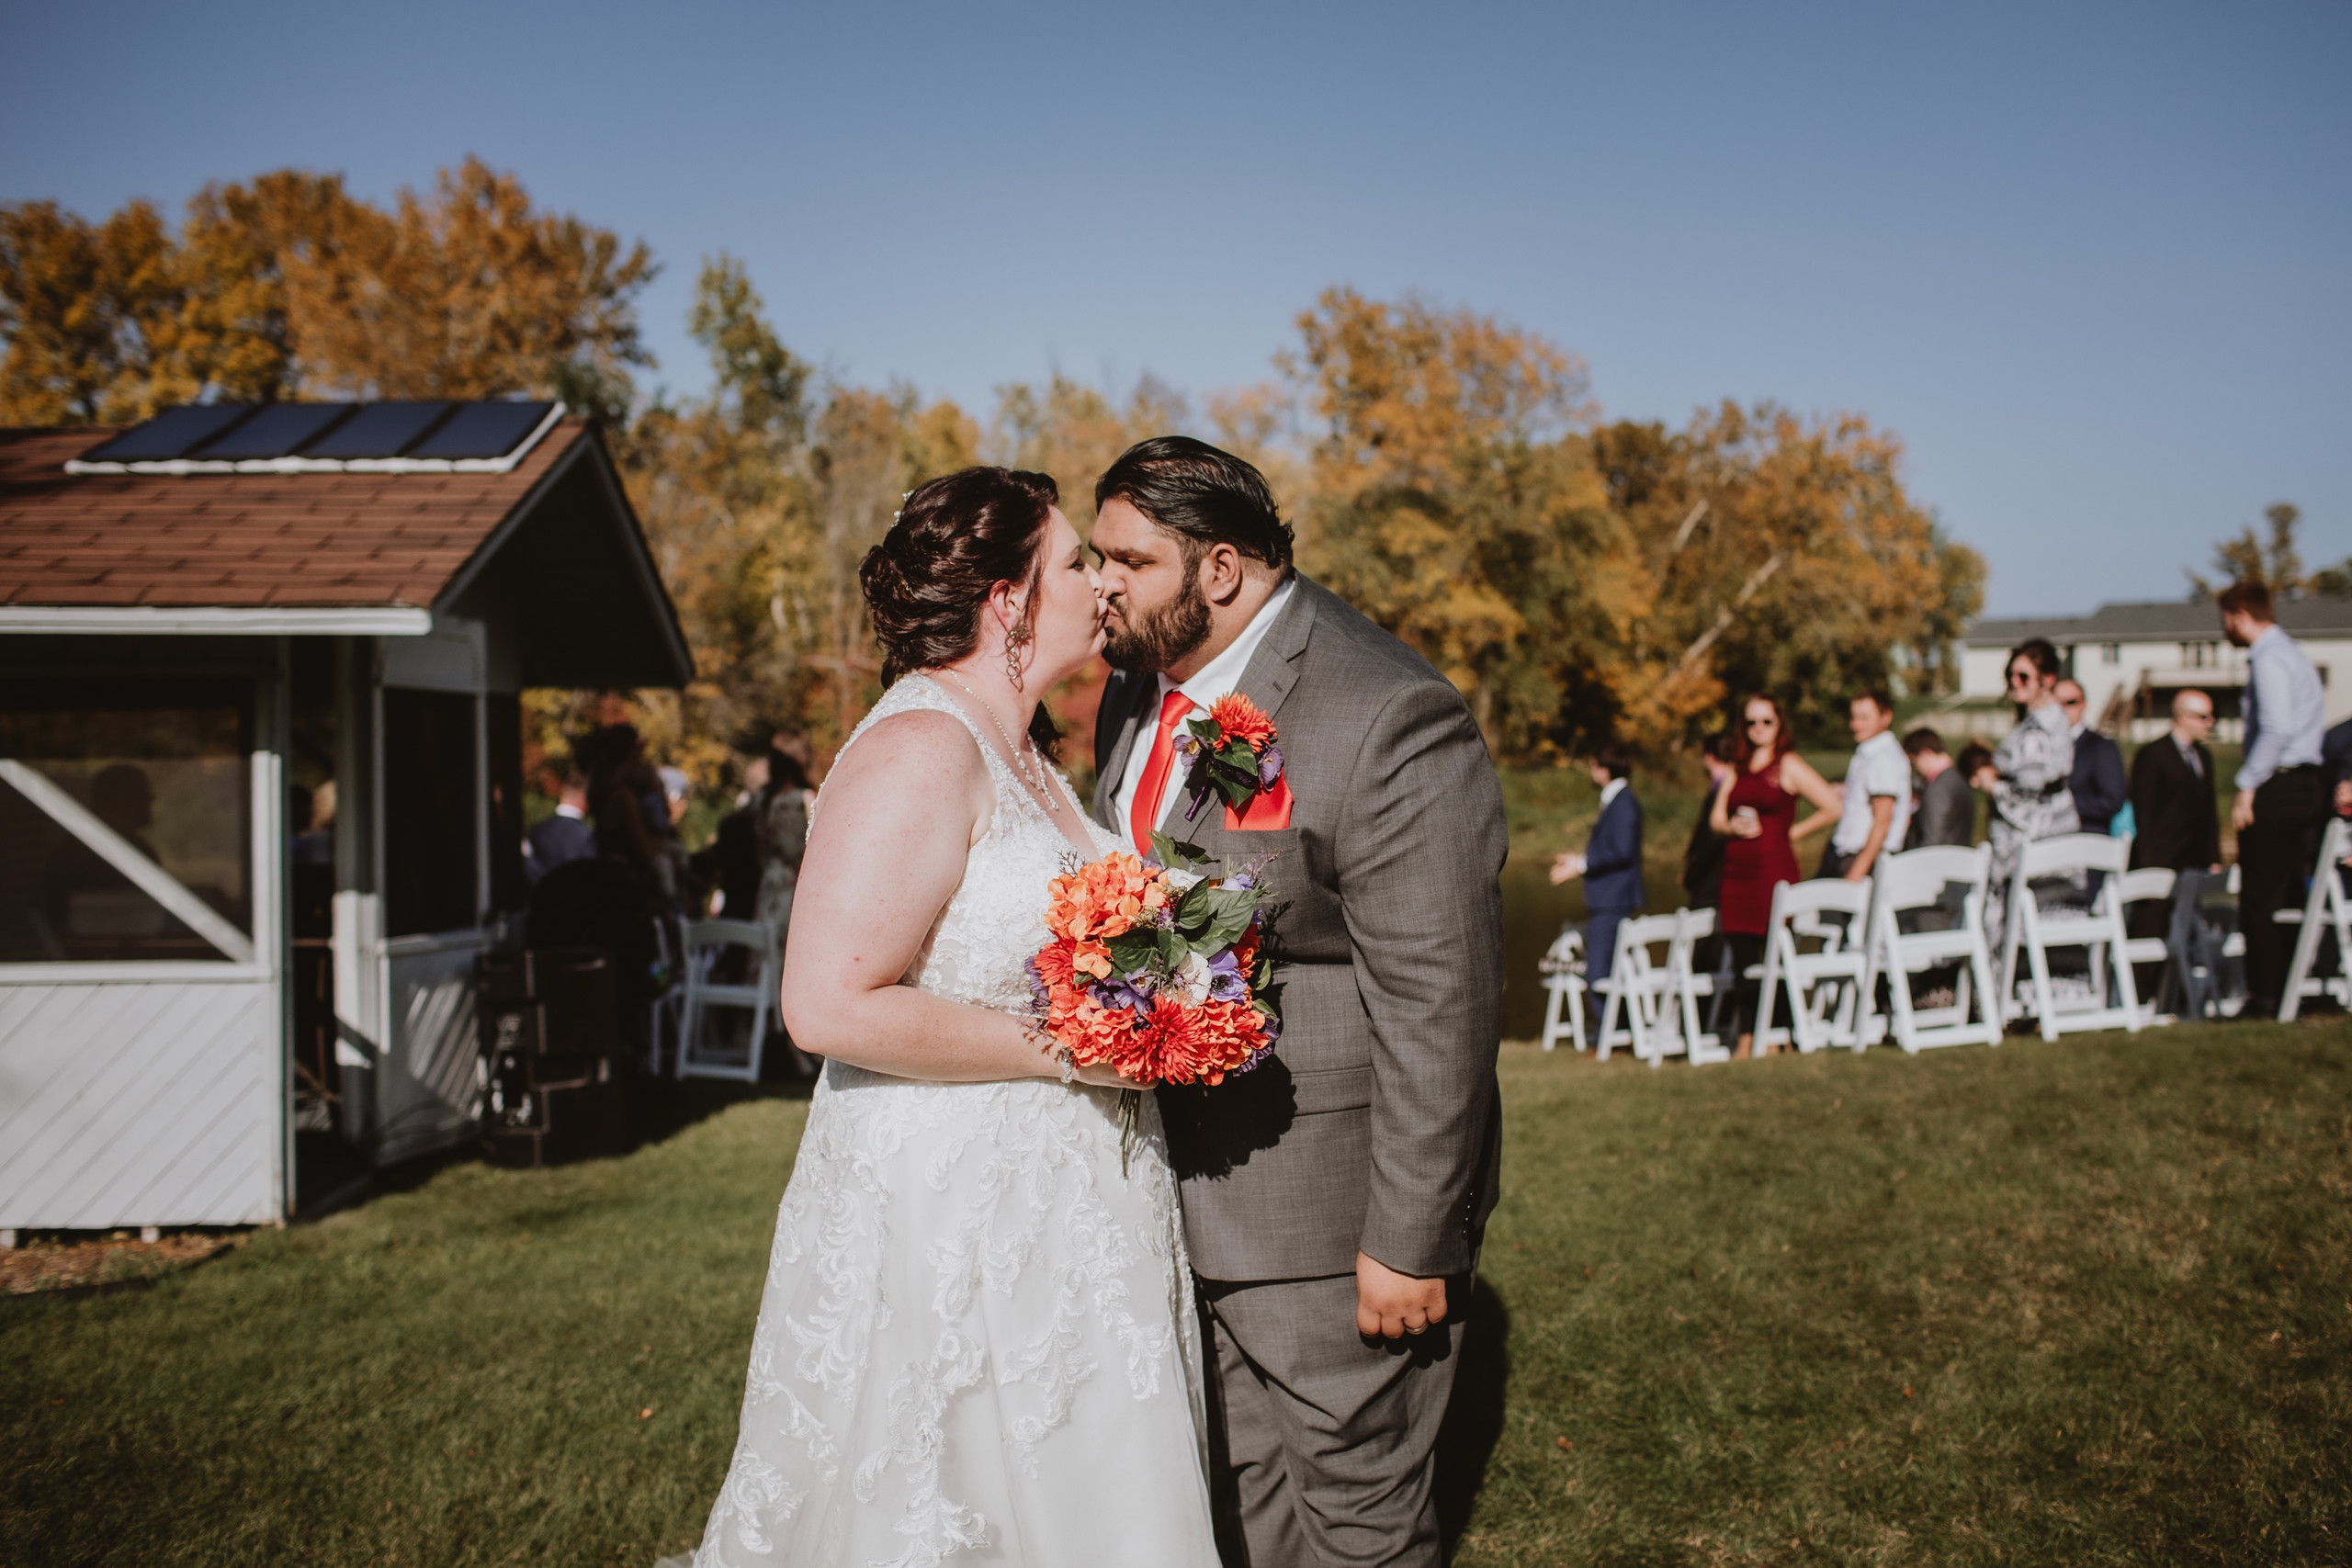 Fall Wedding Kiss at the end of the aisle as couple exits.